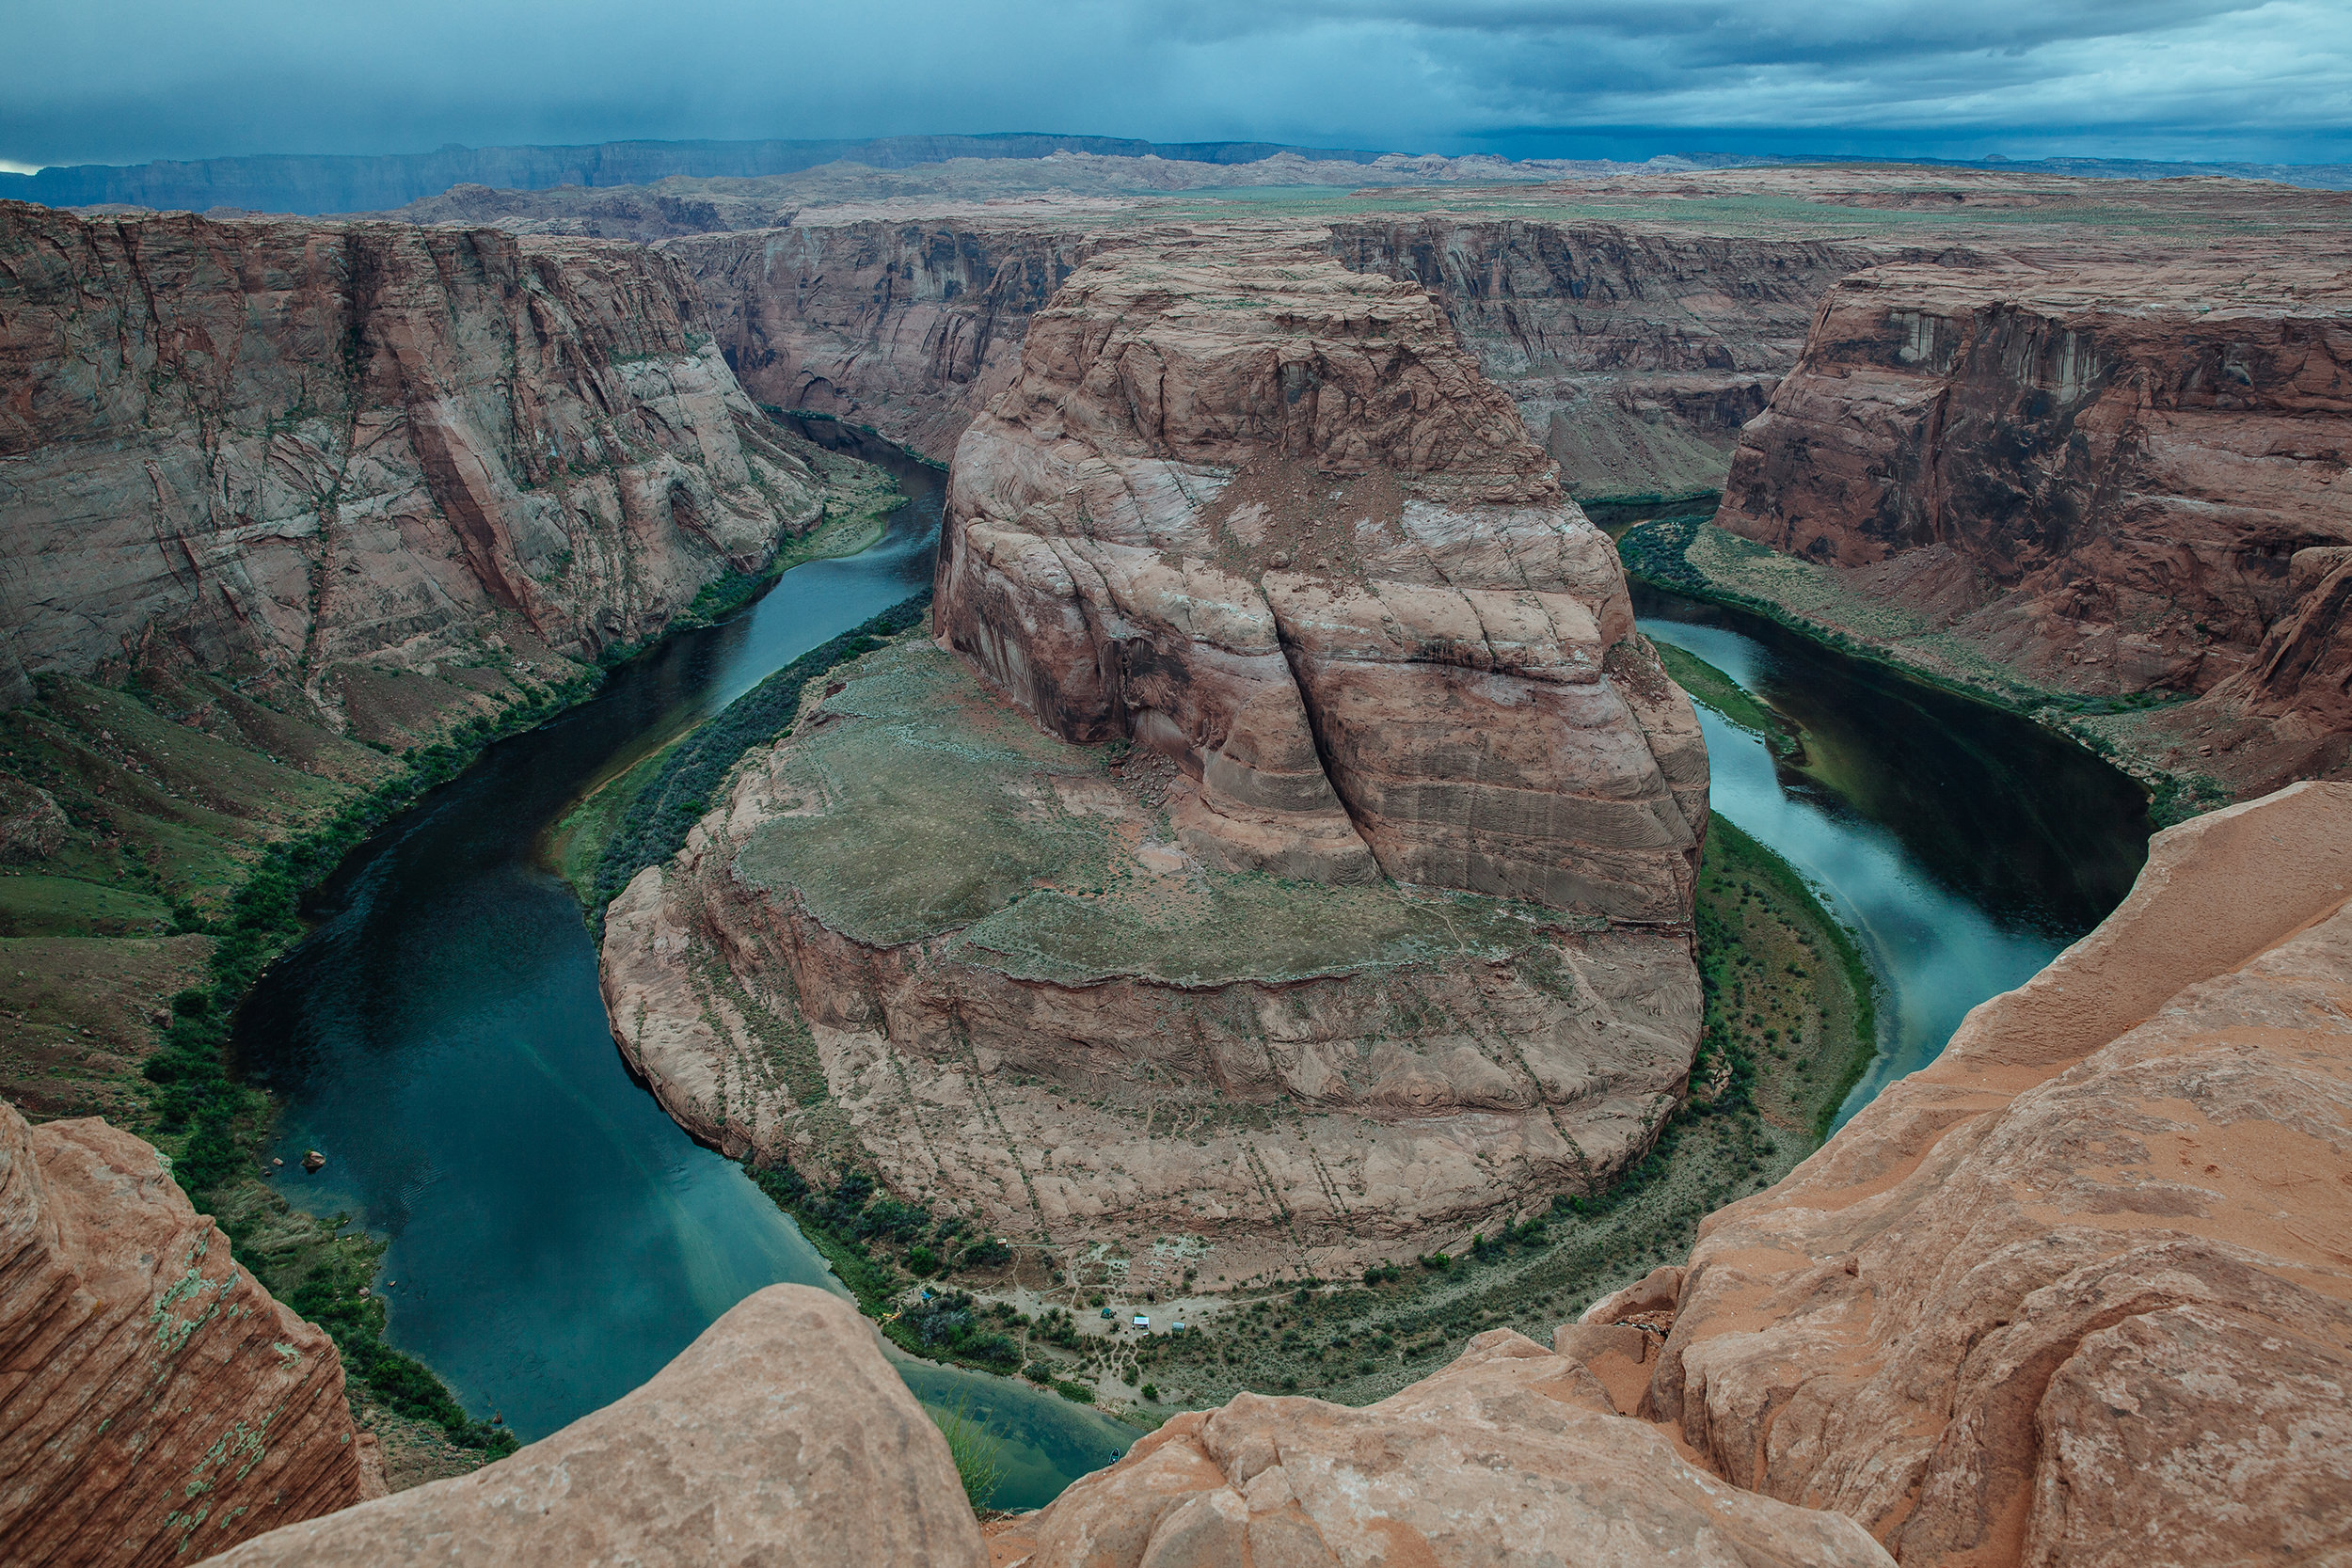 Huckberry grand canyon national park kylie turley horseshoe bend visit image